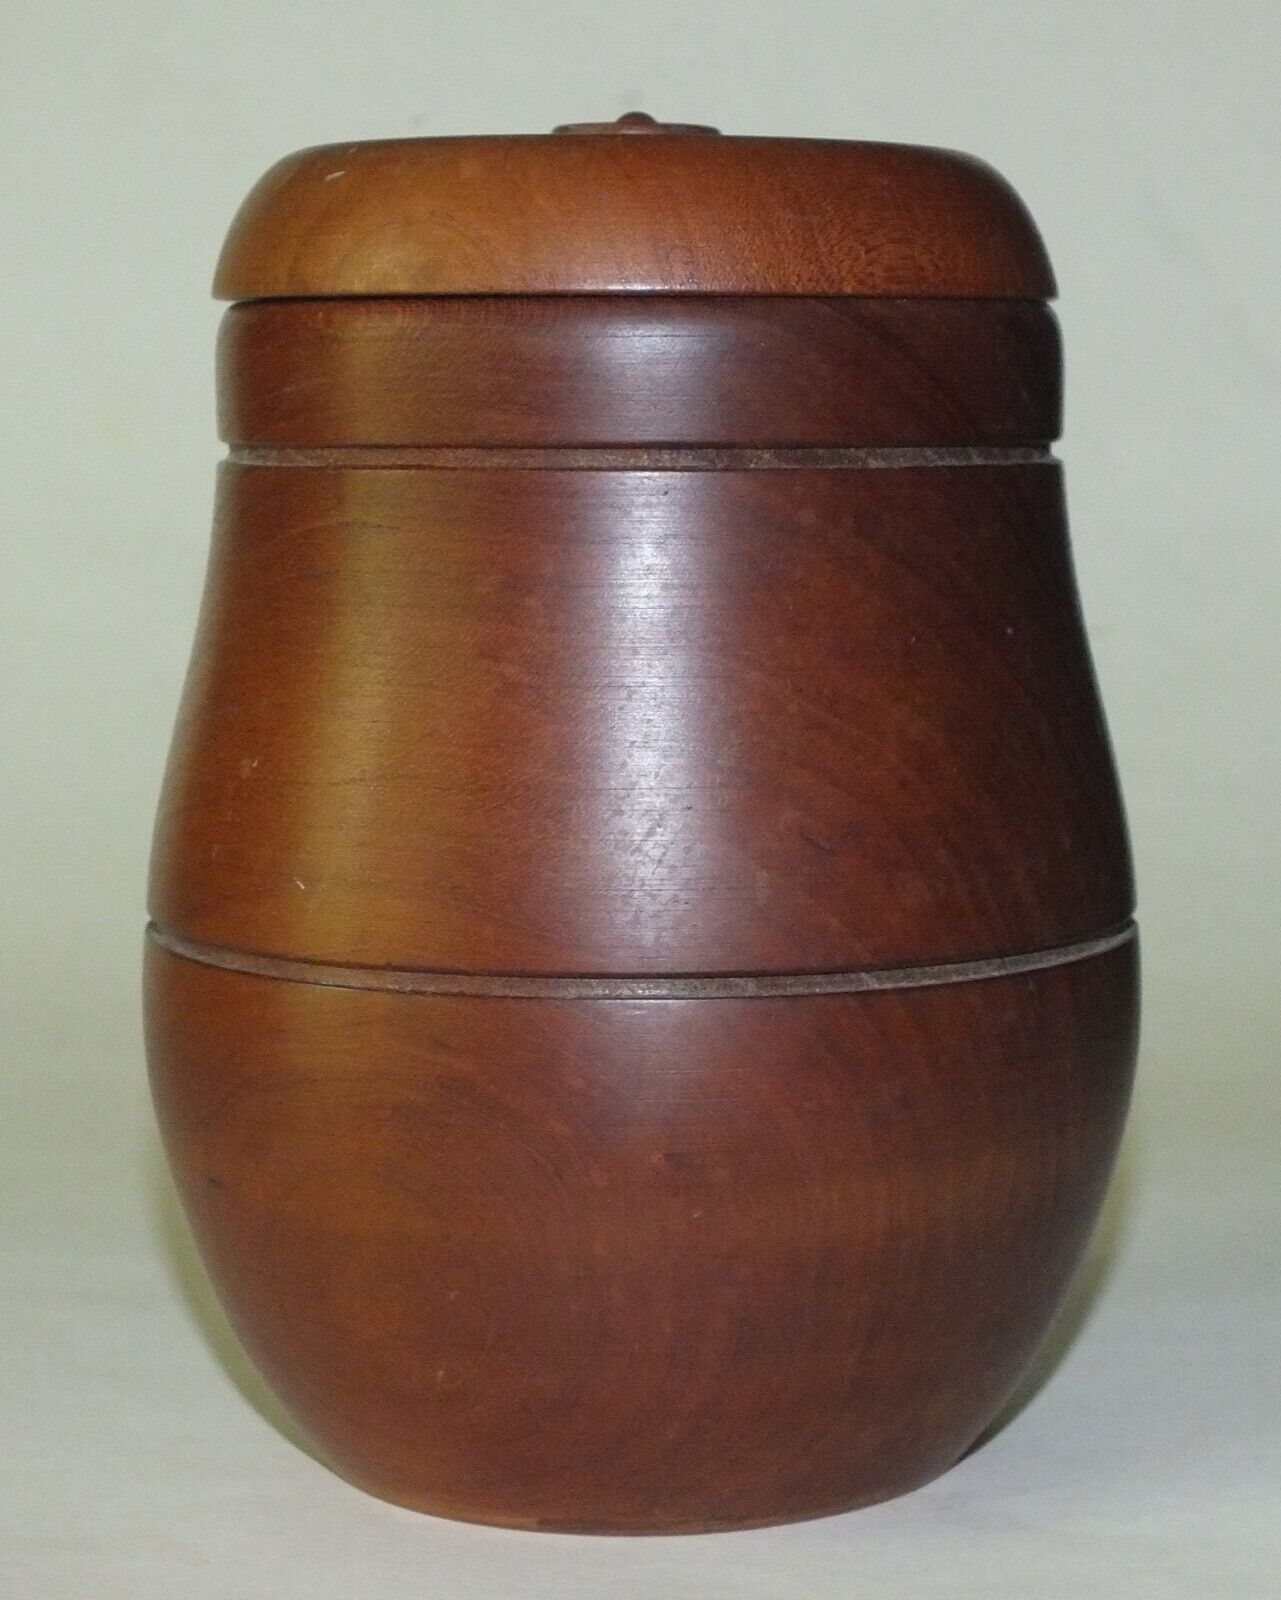 KP Wood Jar With Cover - $15.00